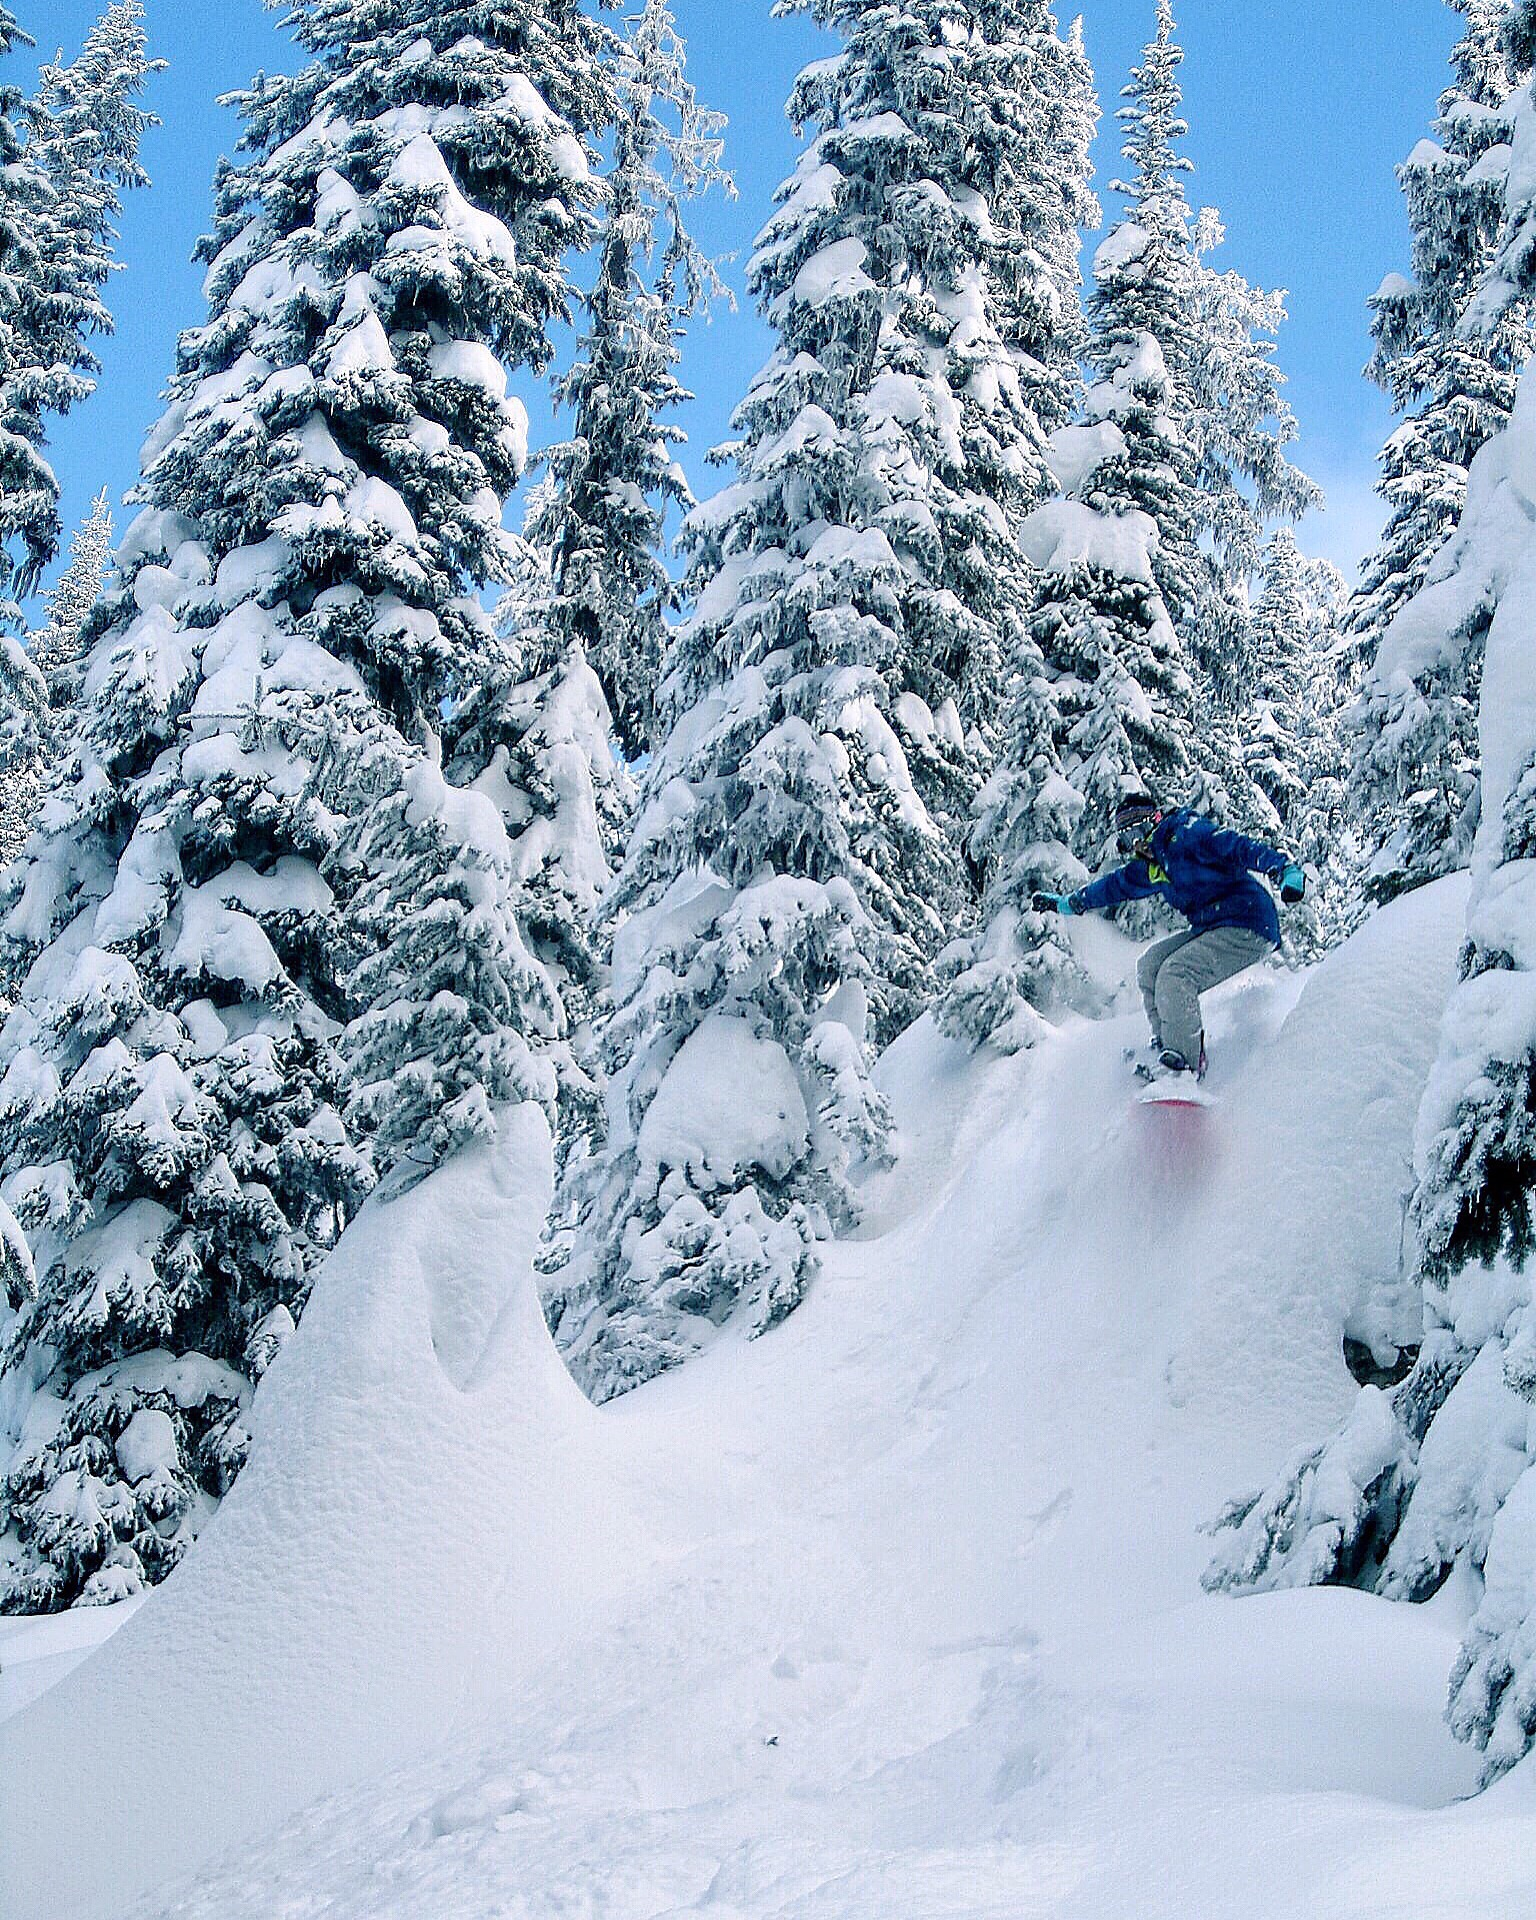 Banff winter snowboarding